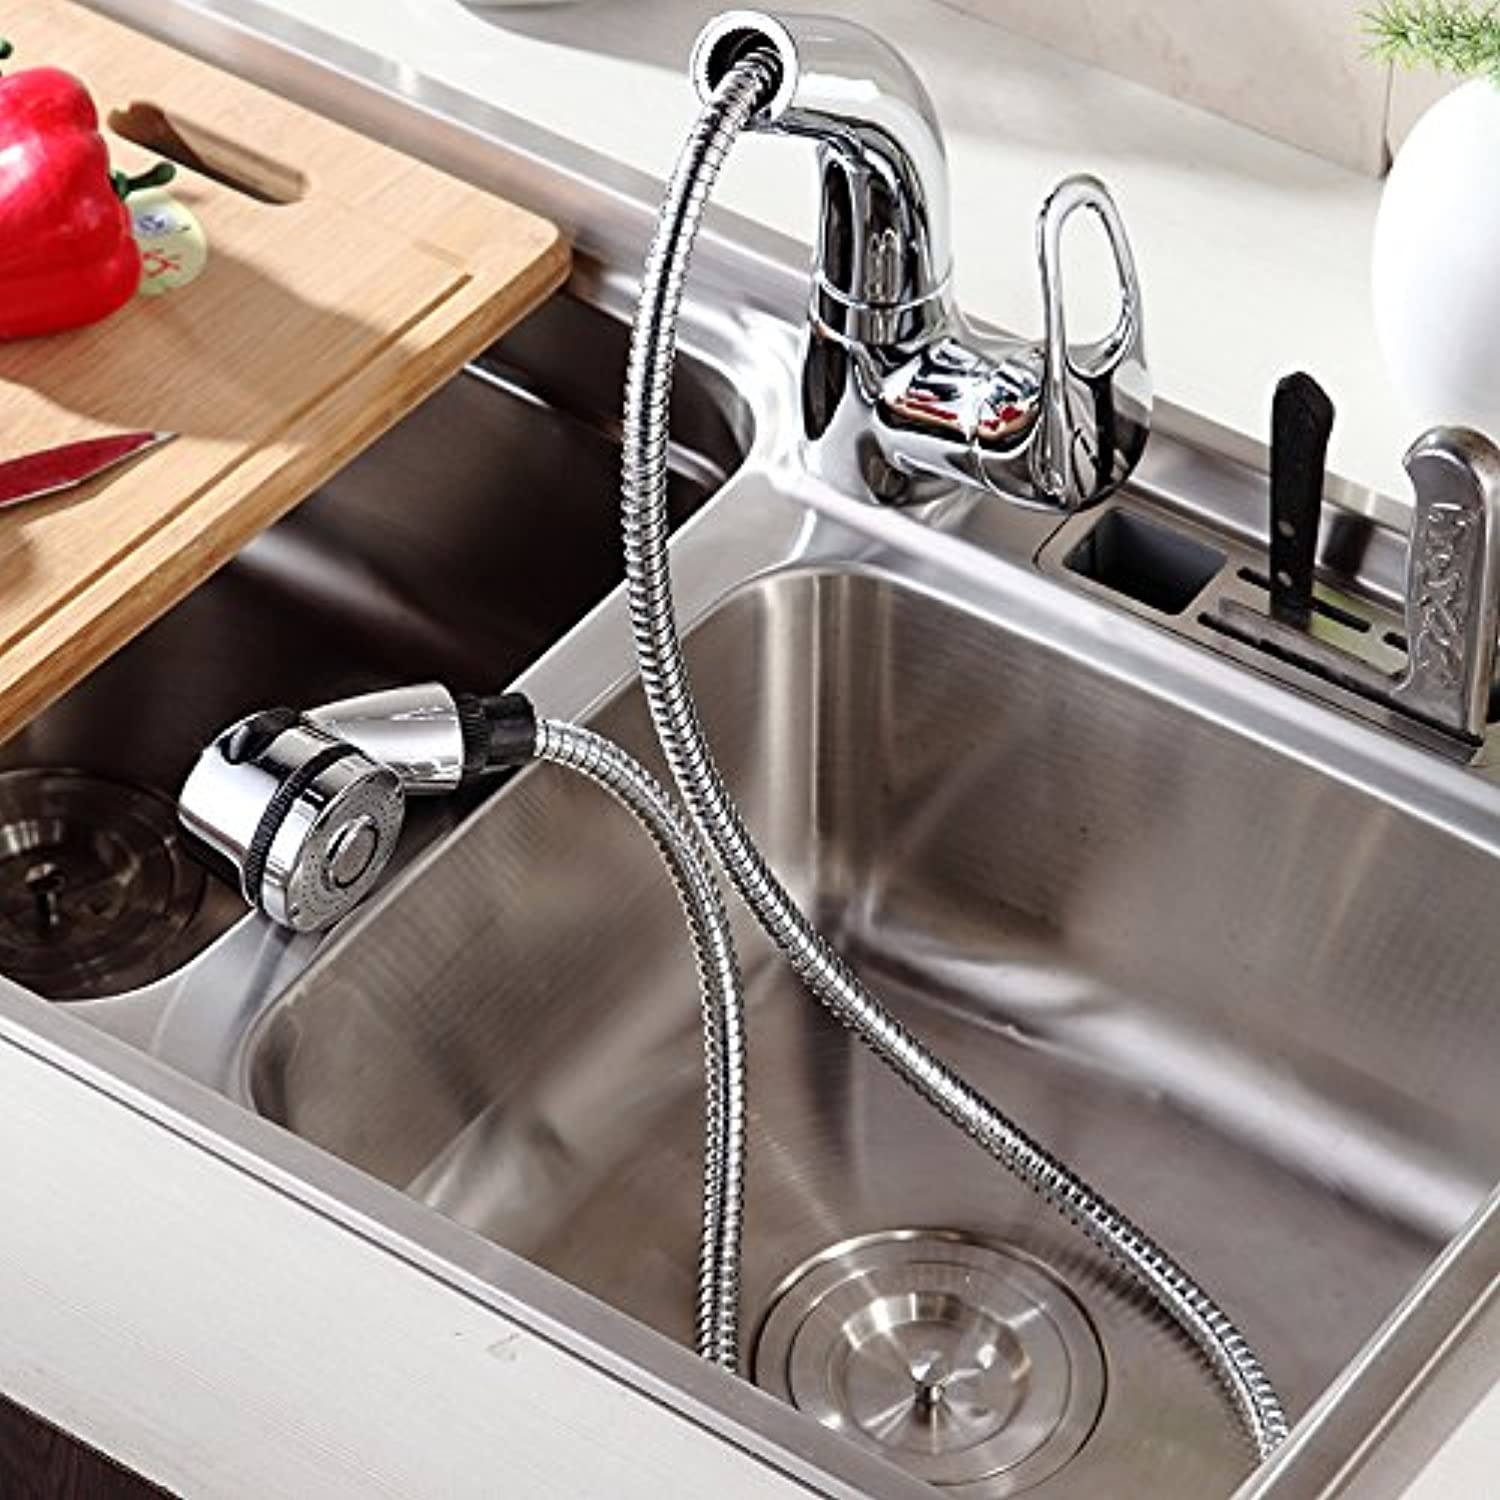 Kohsed Full Copper Kitchen Faucet 0.8M Stainless Steel Hose Pulling 360 Degree redation Can Be Lifted And Downmodern Simple Luxury Quality Guarantee Home Decoration